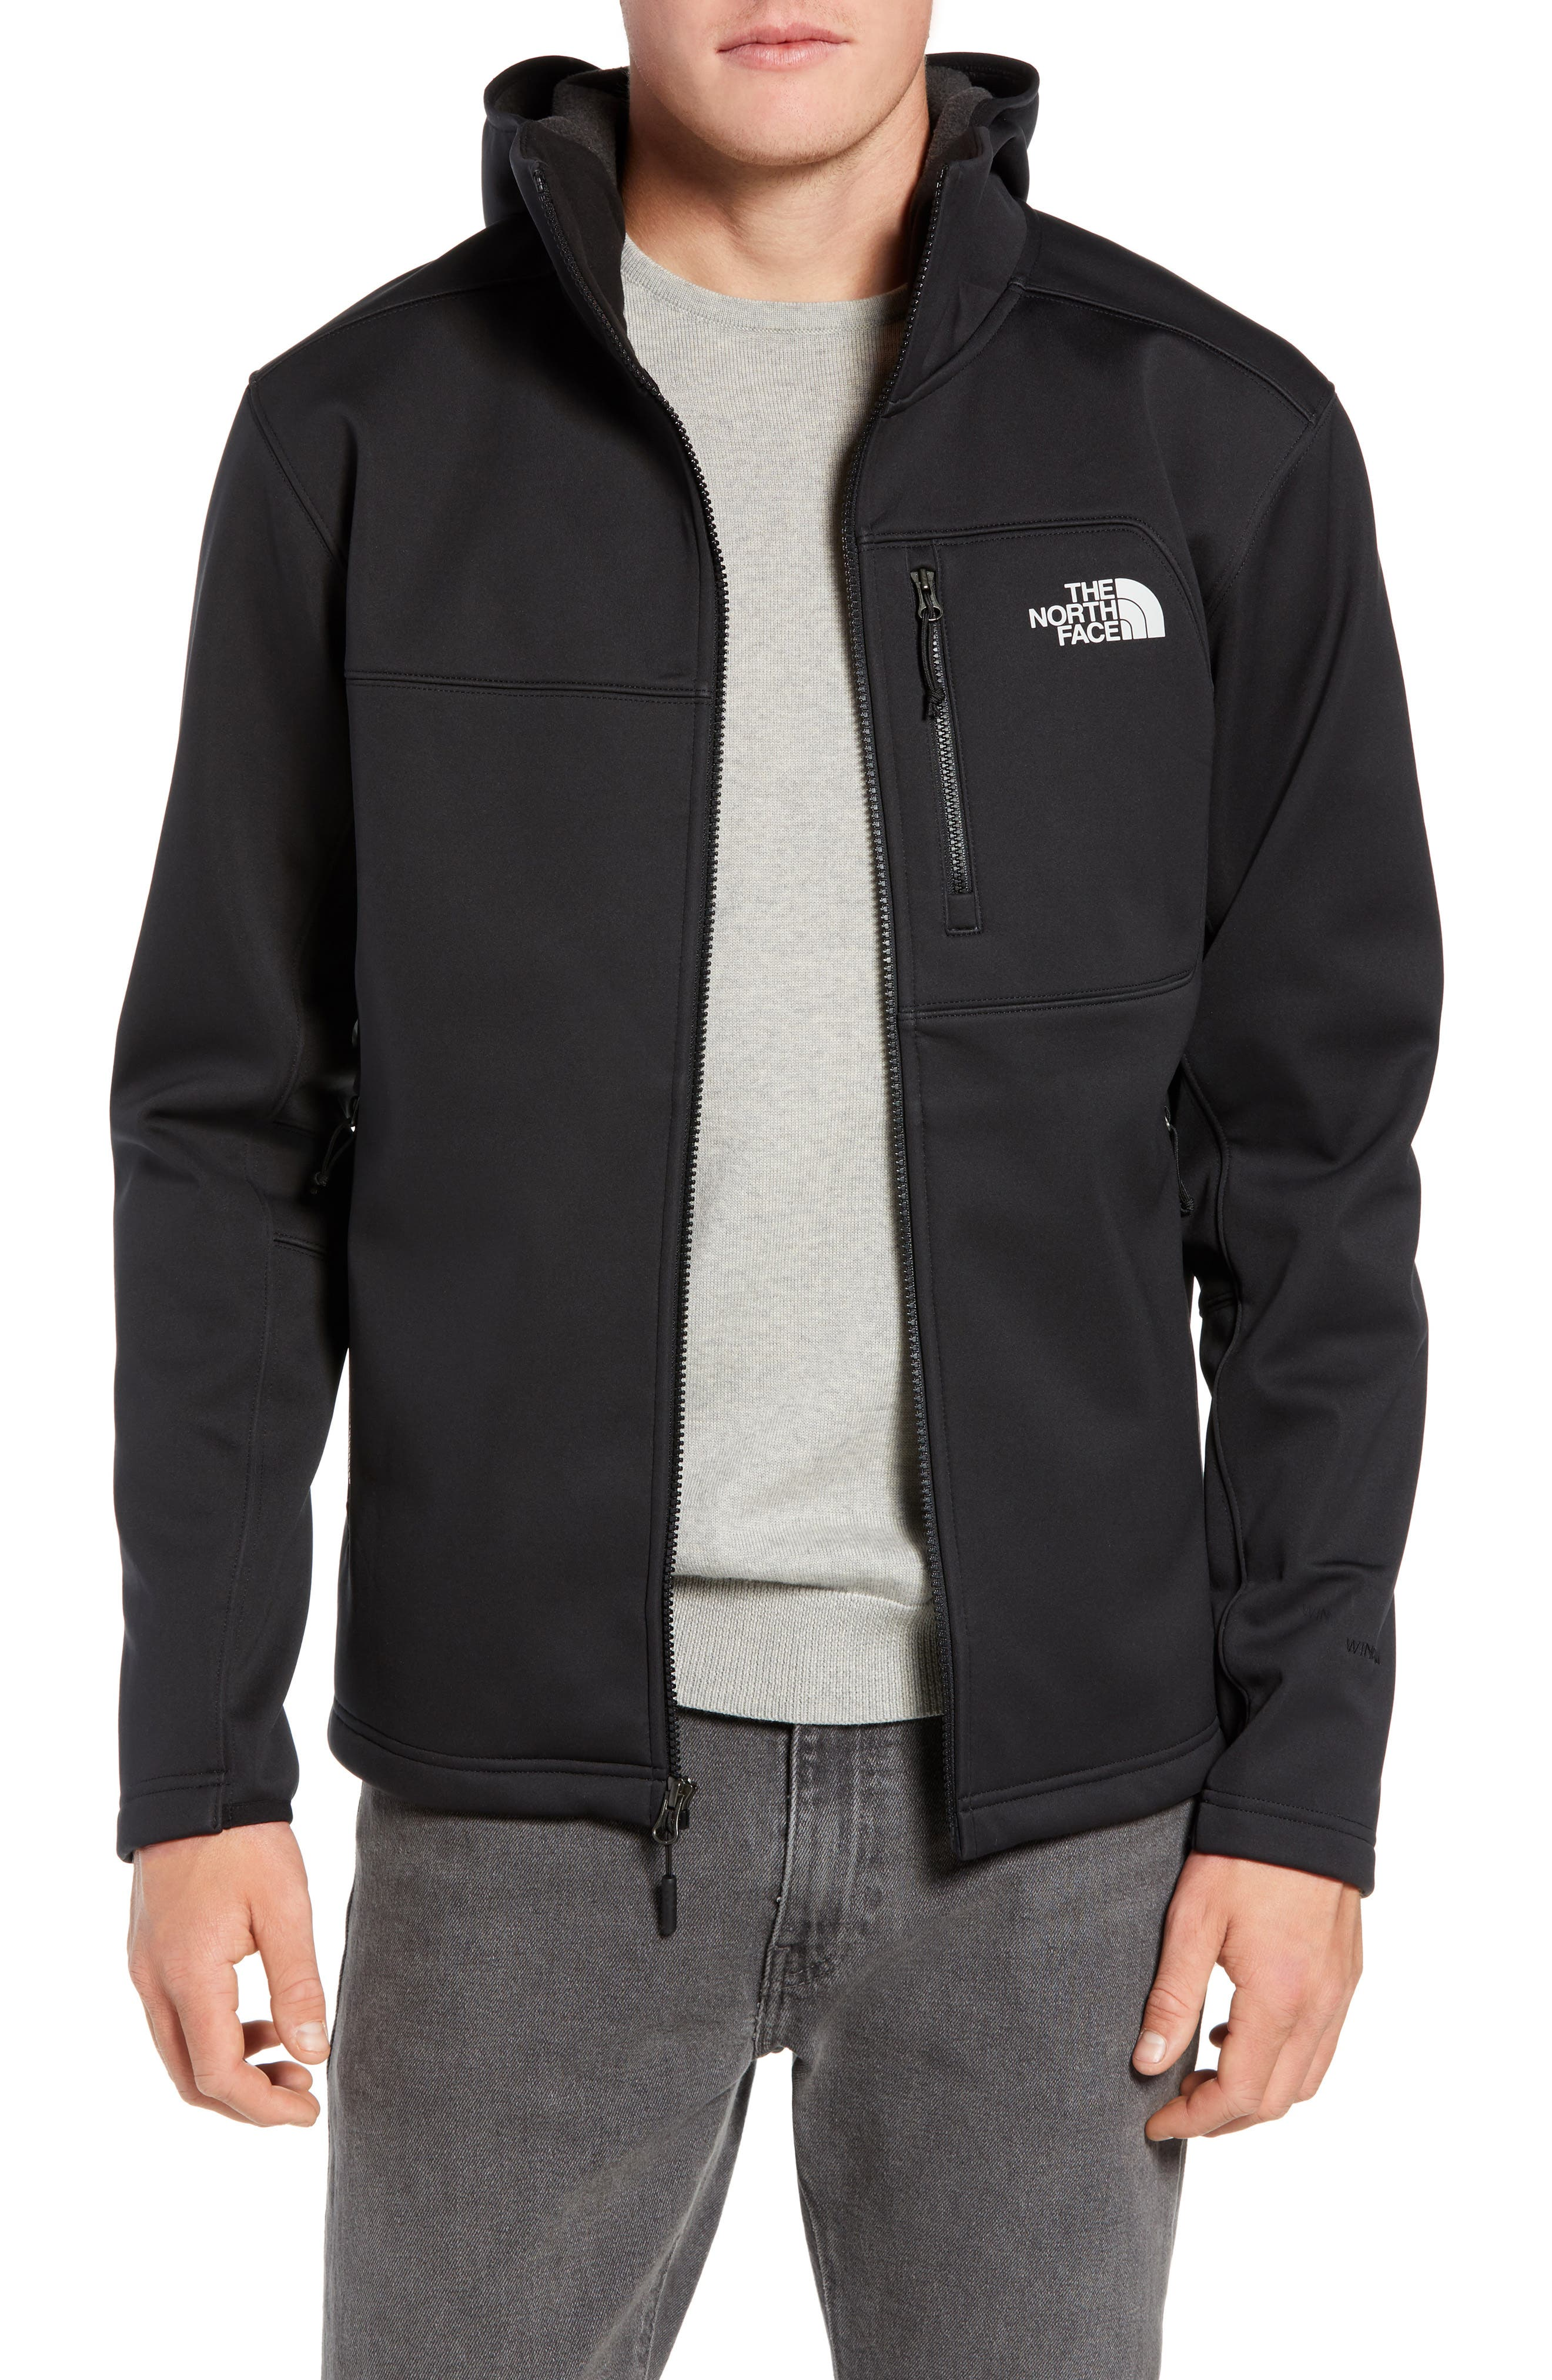 THE NORTH FACE North Face Apex Risor Hooded Jacket, Main, color, TNF BLACK/ TNF BLACK